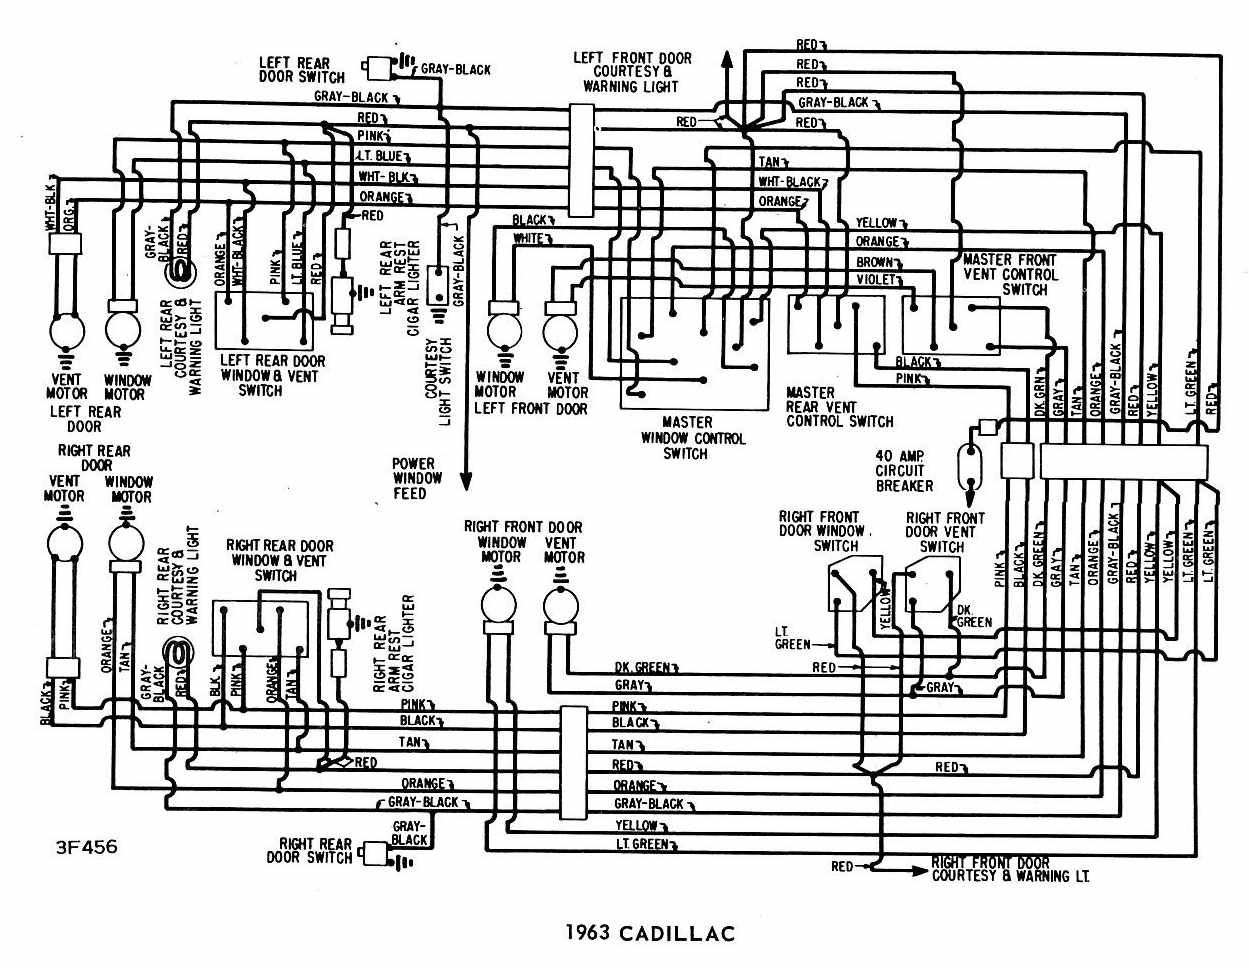 1968 cadillac ac wiring diagram wiring diagram user 1968 cadillac ac wiring diagram [ 1249 x 968 Pixel ]